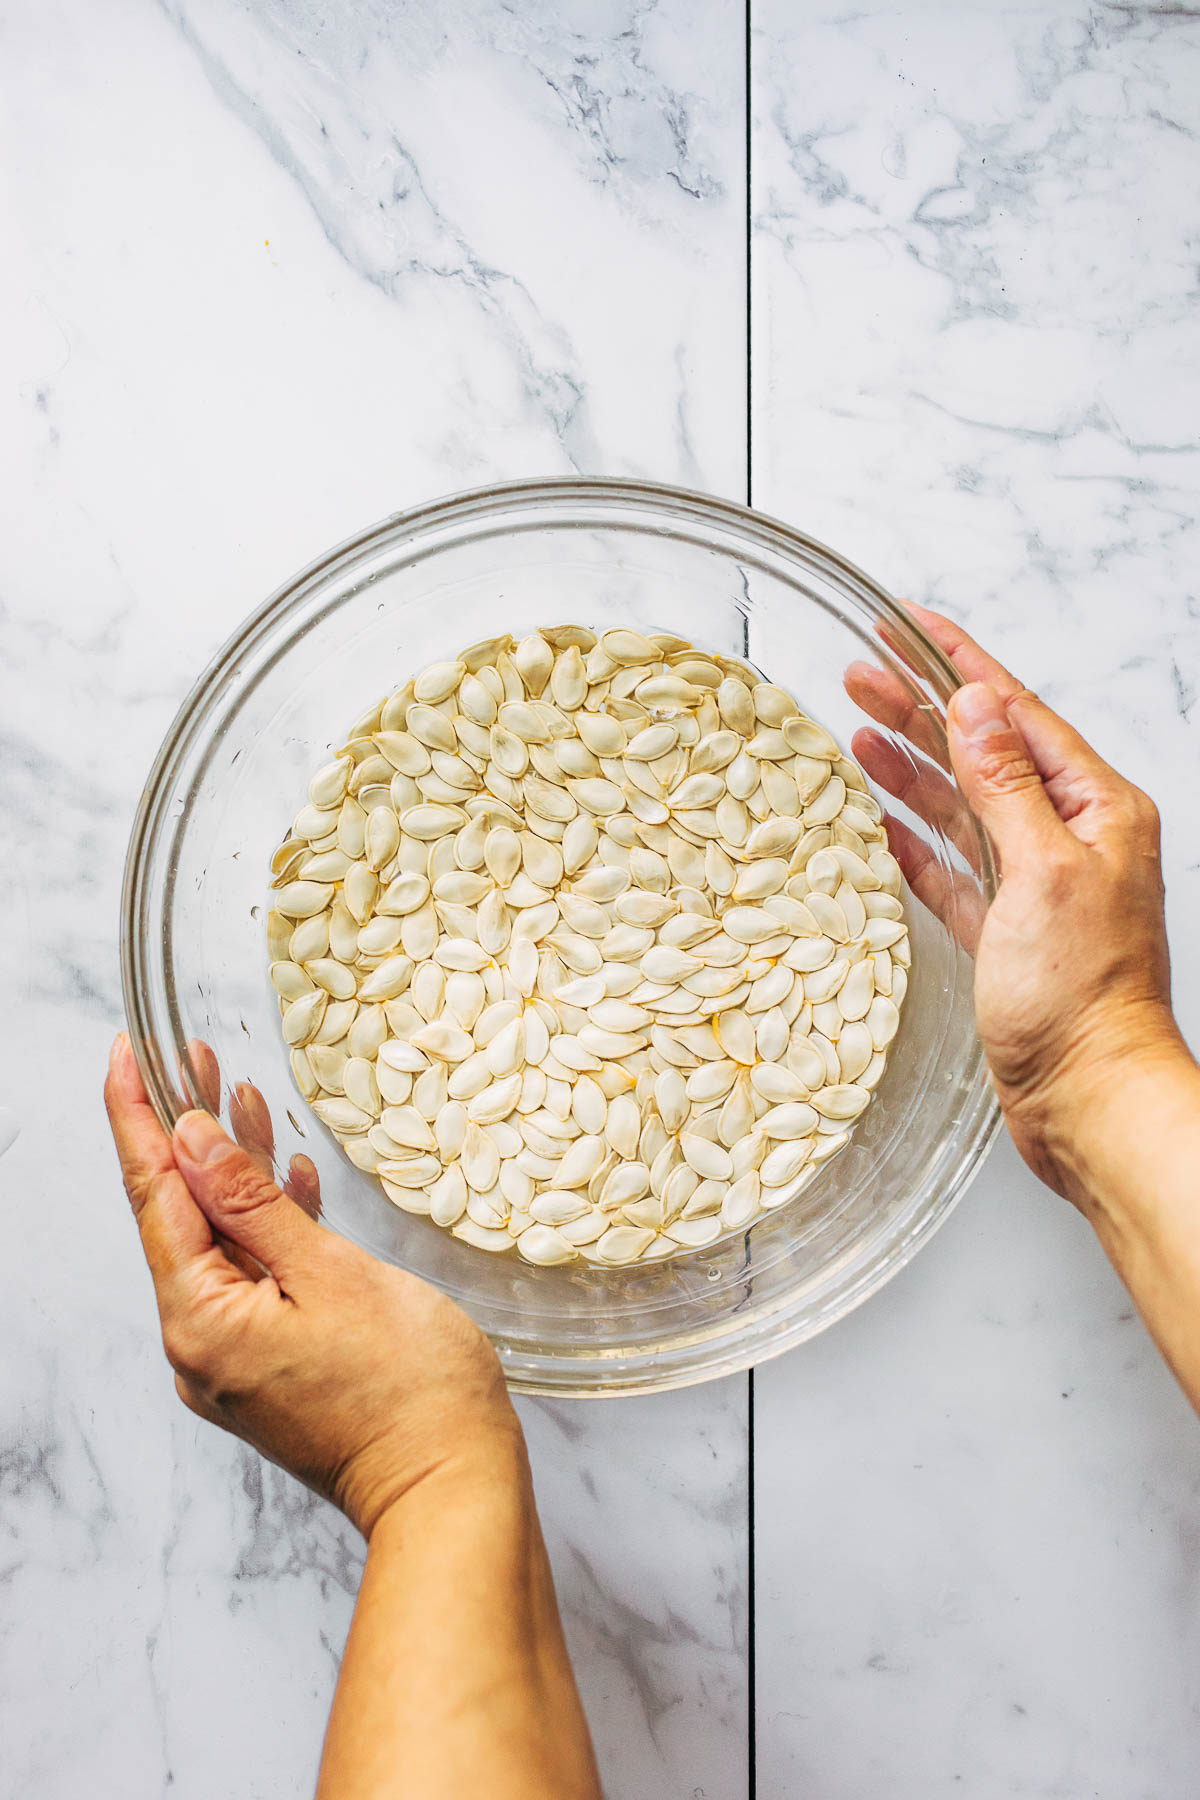 Hands holding a glass bowl of water filled with raw seeds.